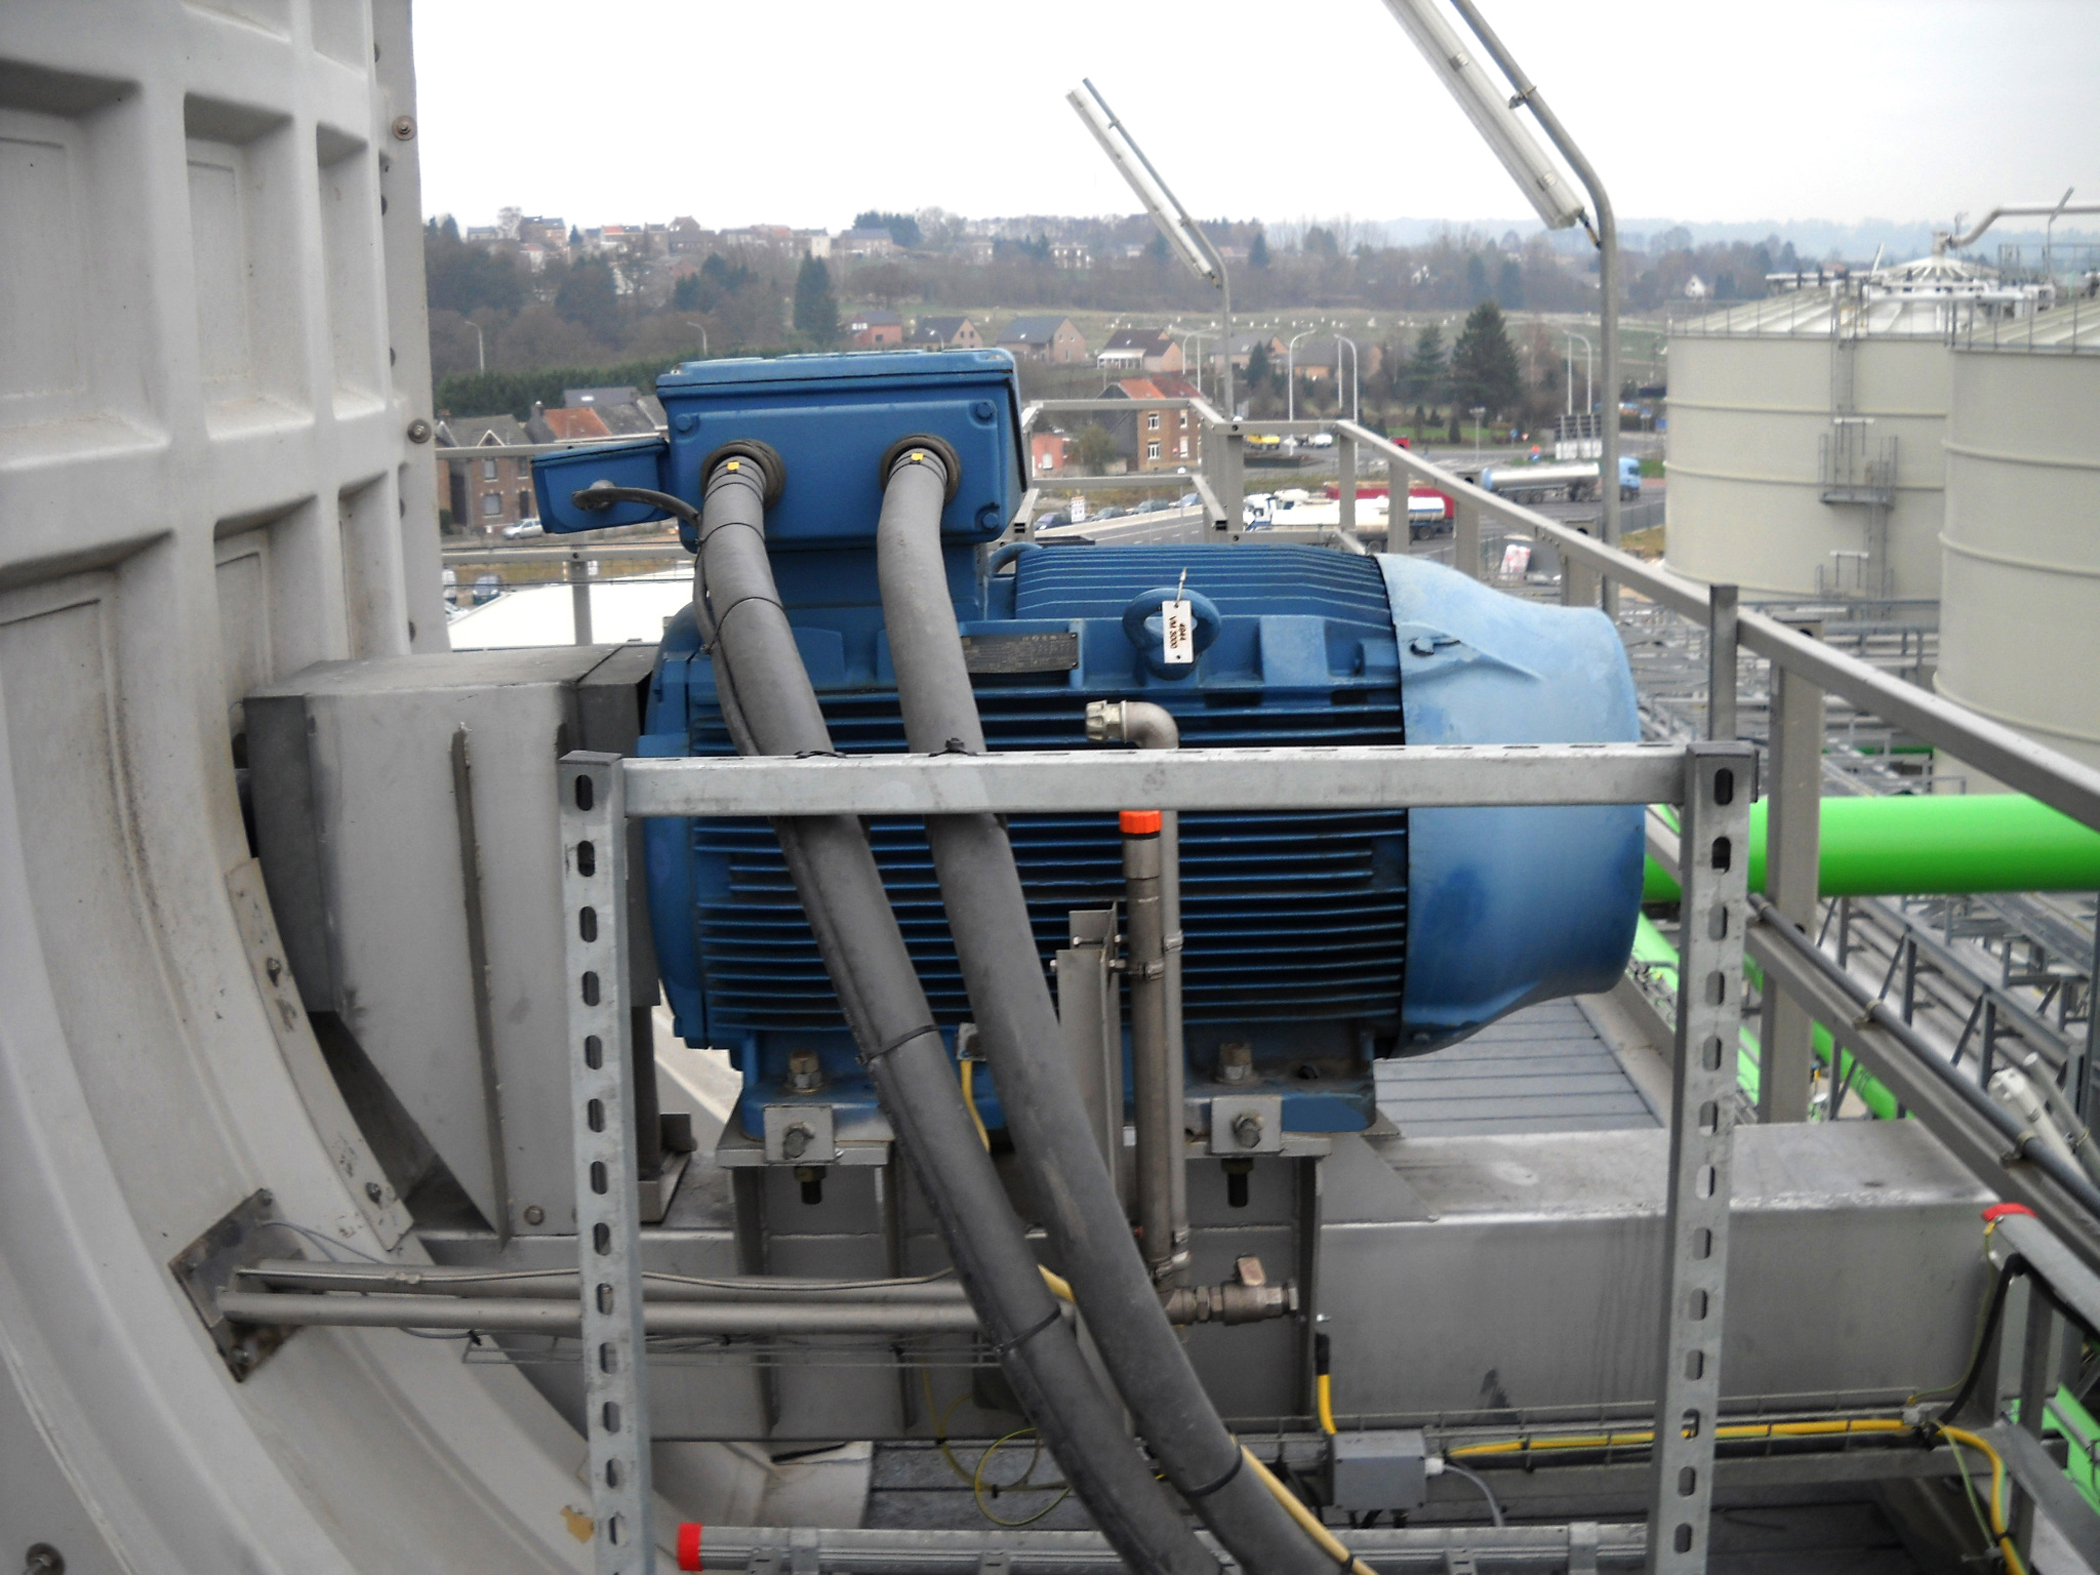 First weg w22 high efficiency motors in europe used in High efficiency motors